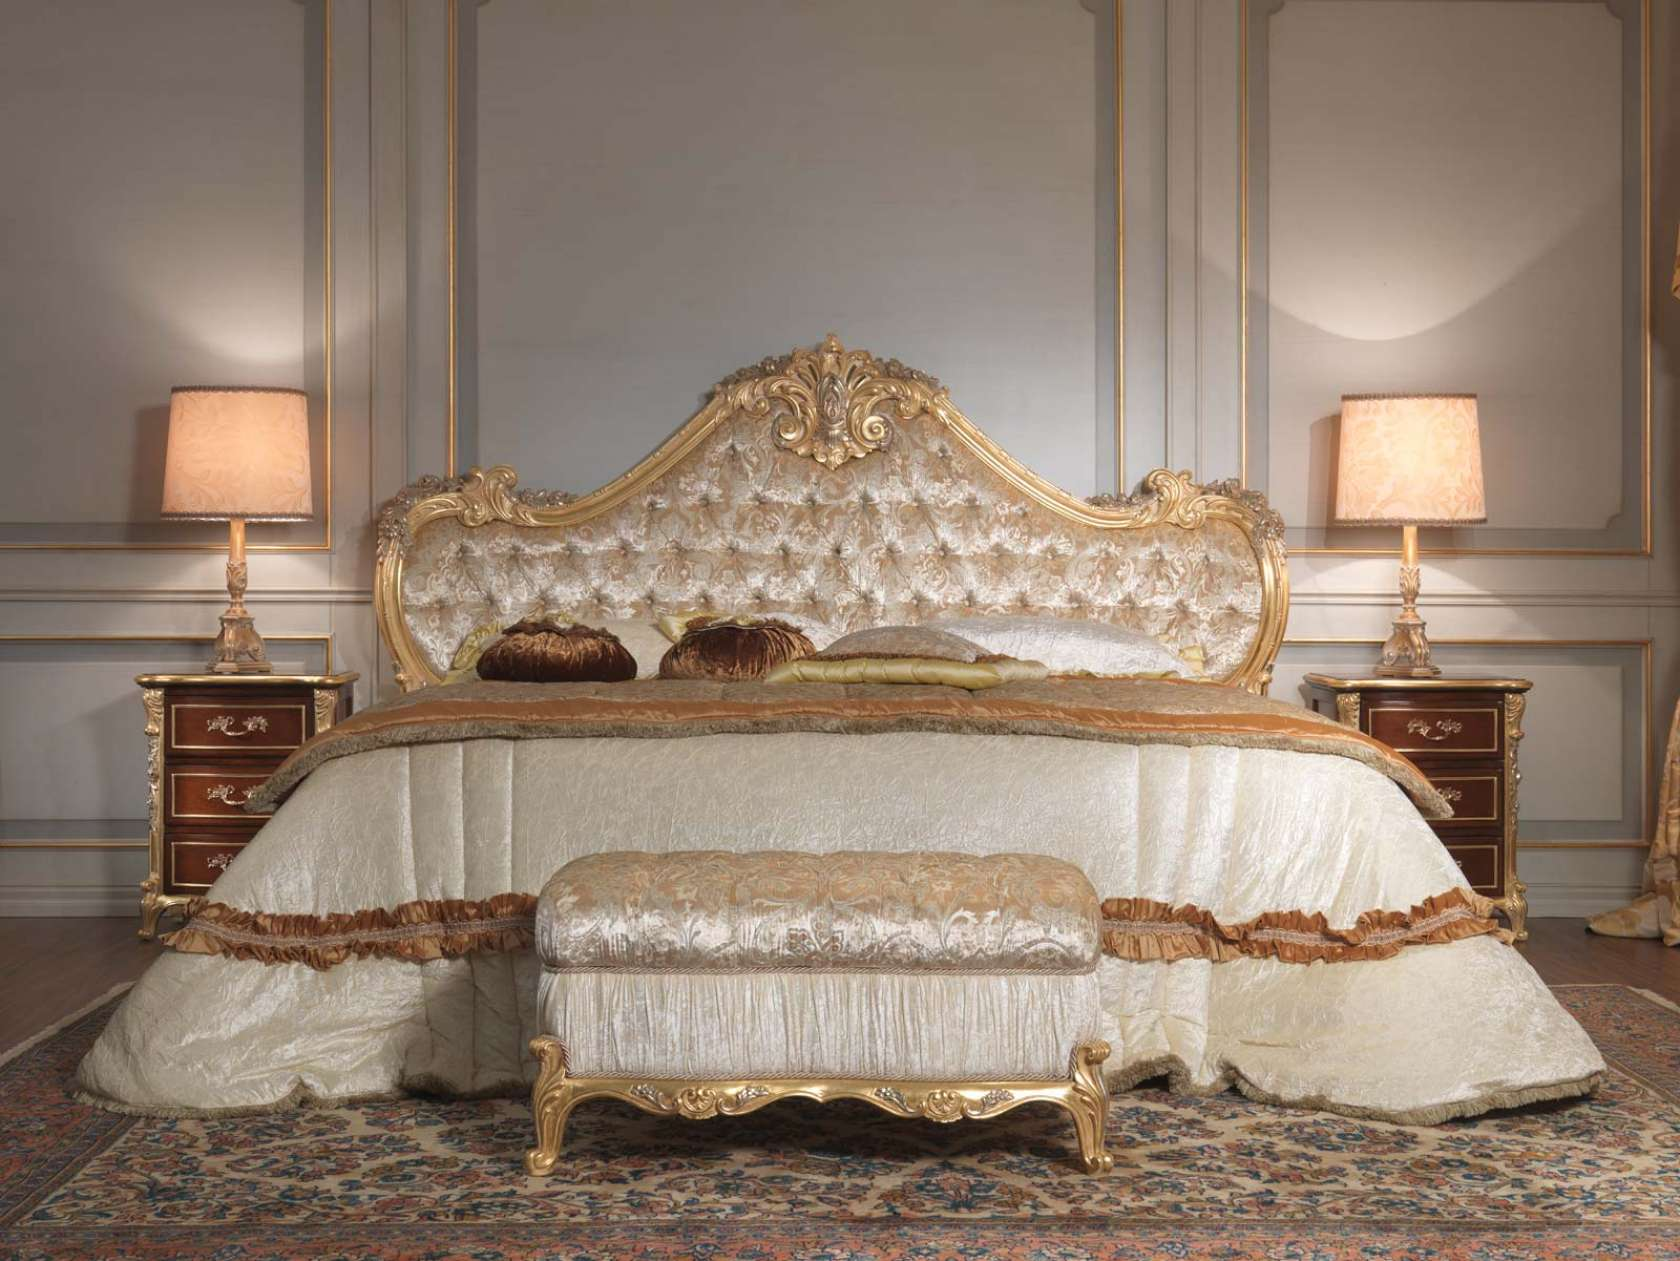 Classic italian bedroom 18th century, bed, bench, night table ...